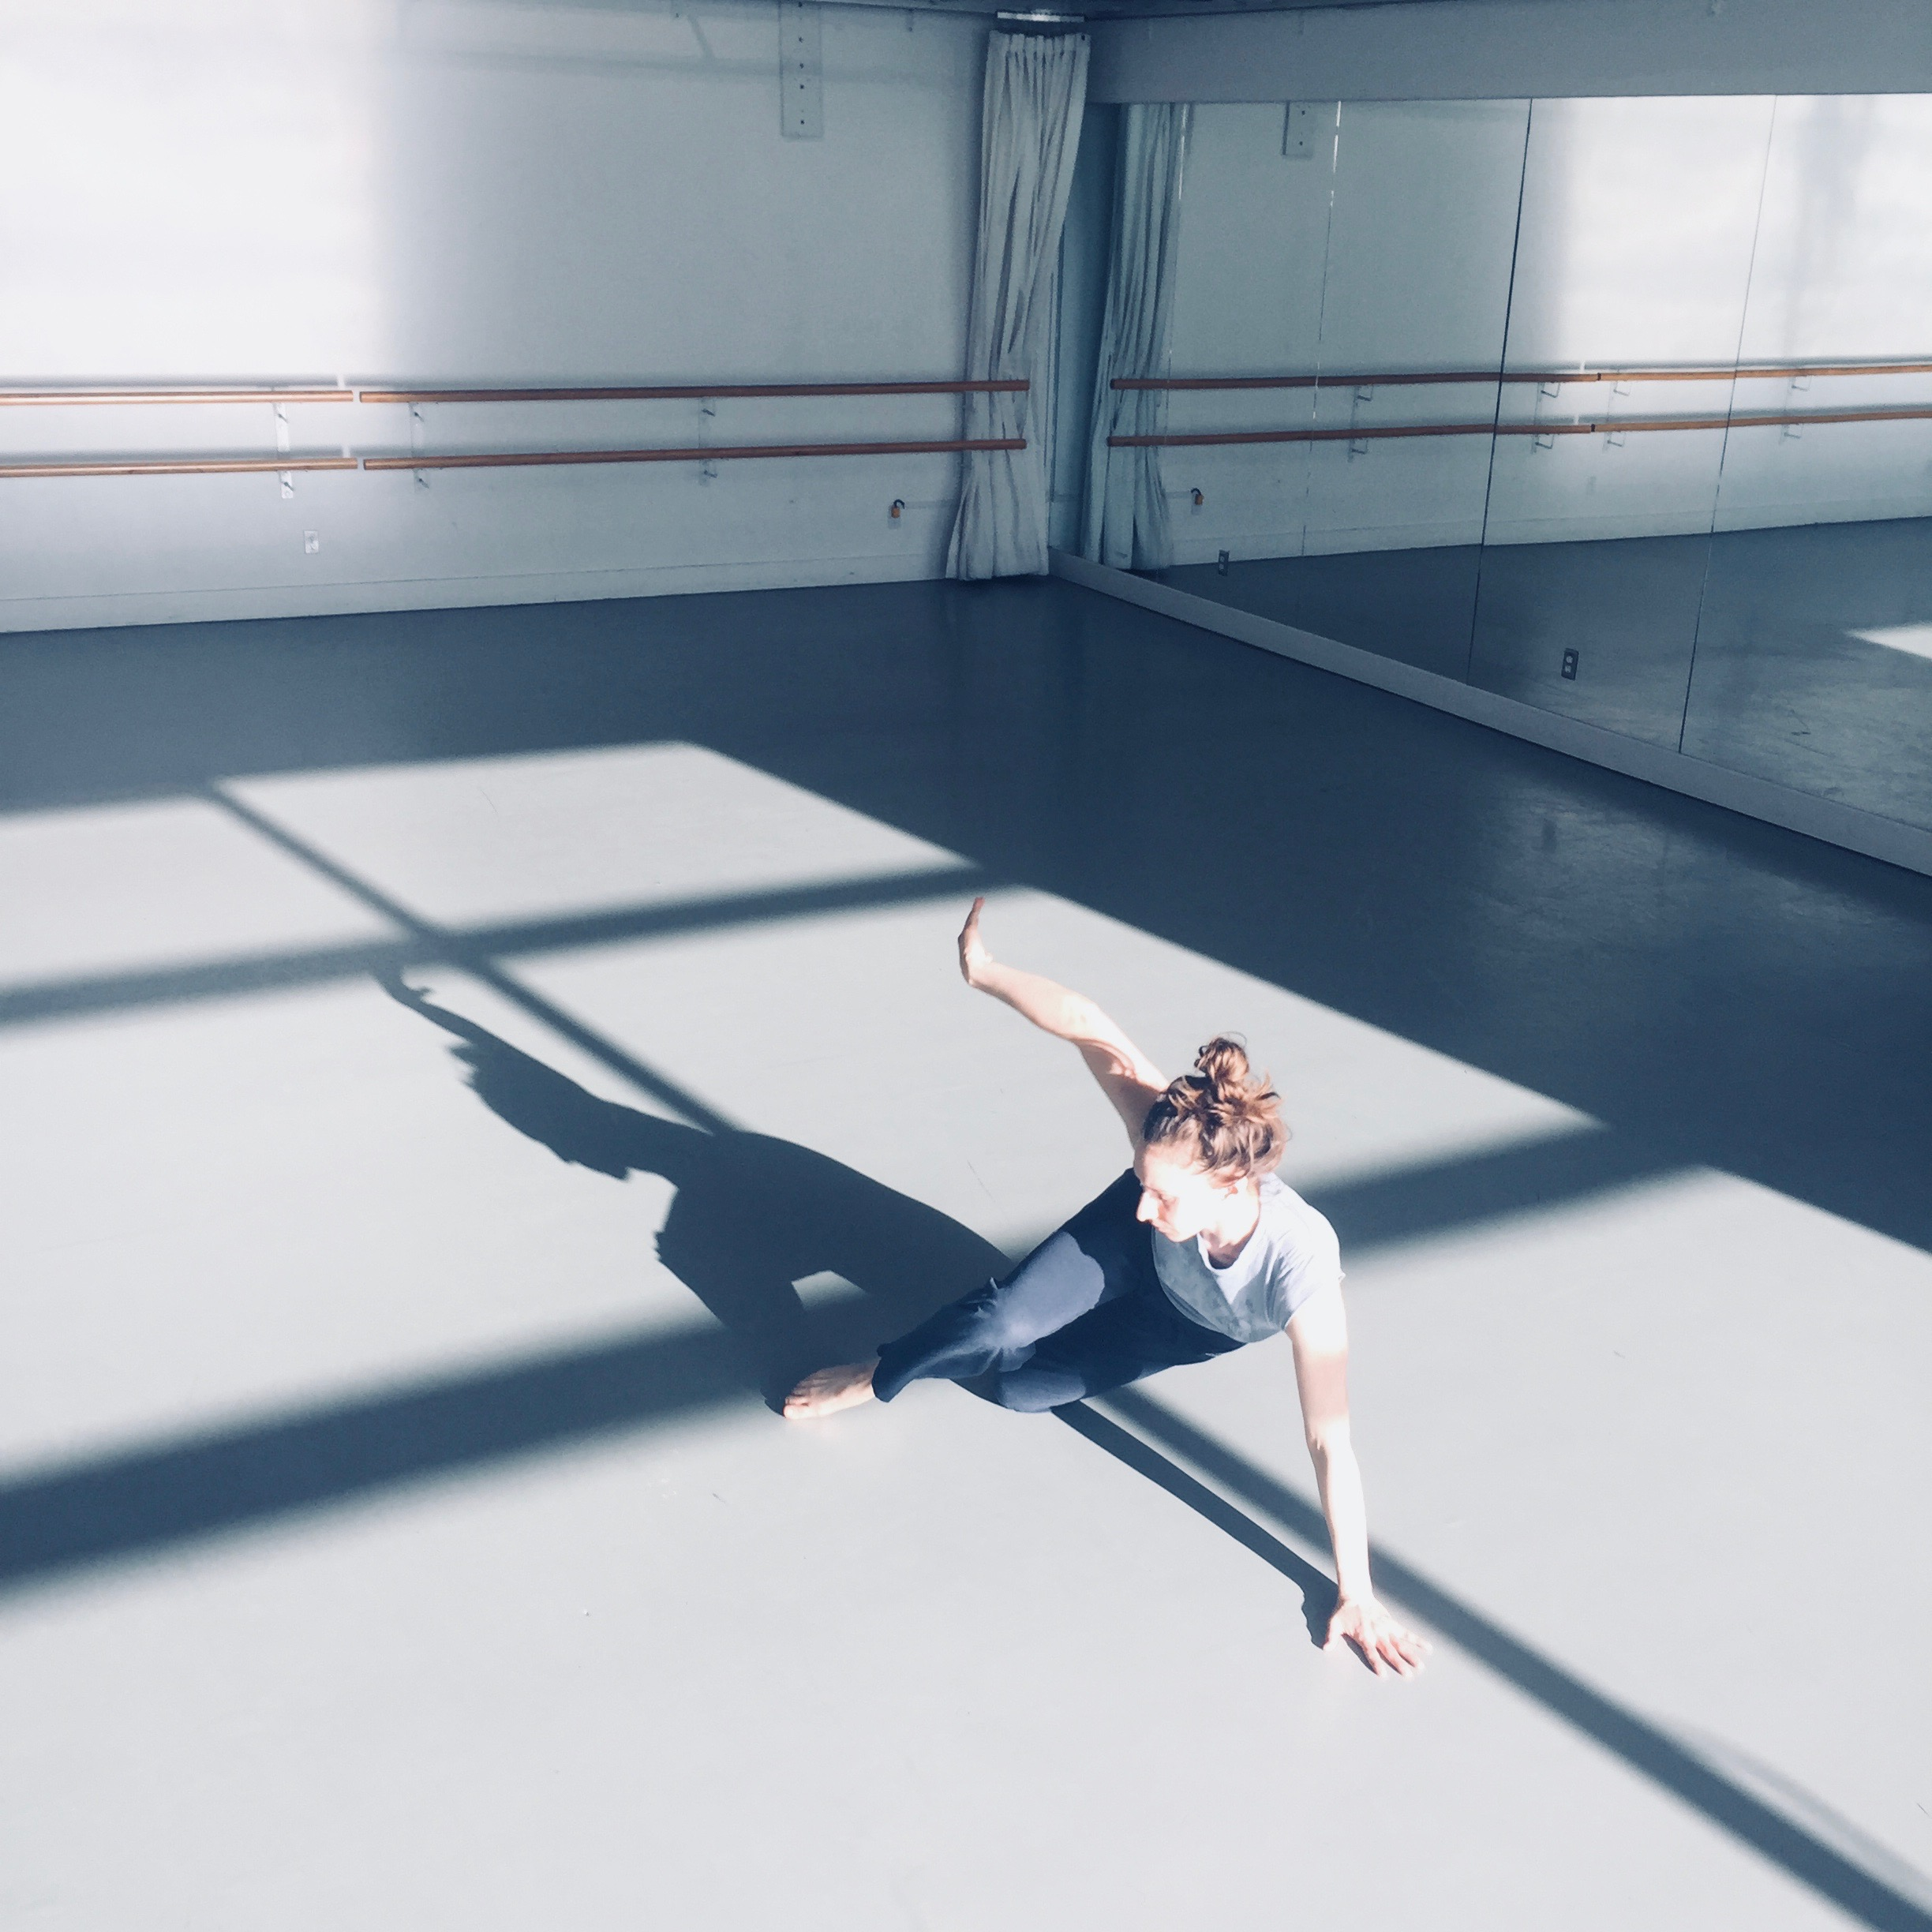 Sénescence  (in-process) Created and performed by Olivia Shaffer at 12 Minutes Max February 2018 image credit: Hilary Maxwell